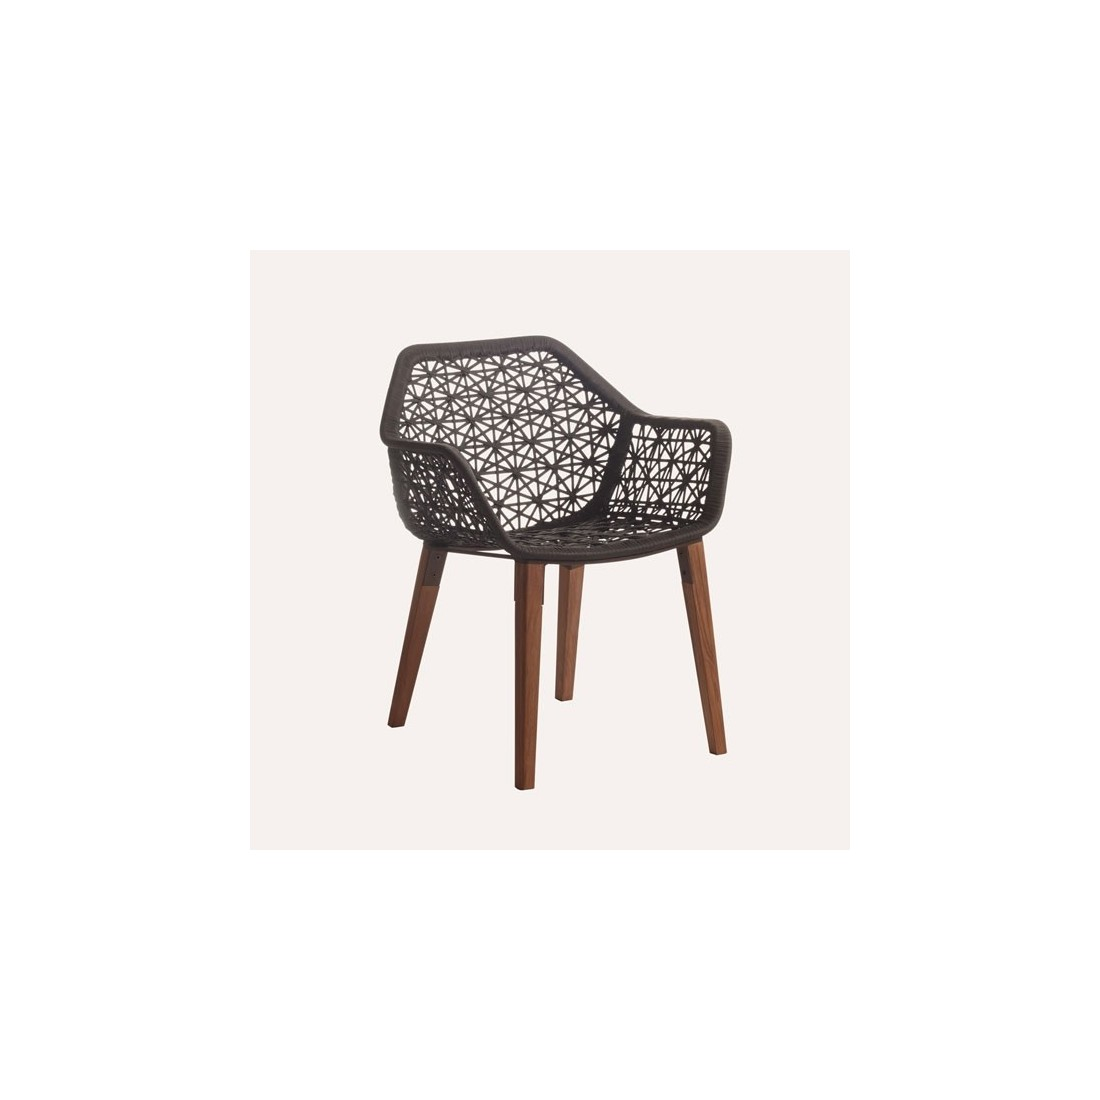 Fauteuils Table Fauteuil Table A Manger Maison Design Wiblia